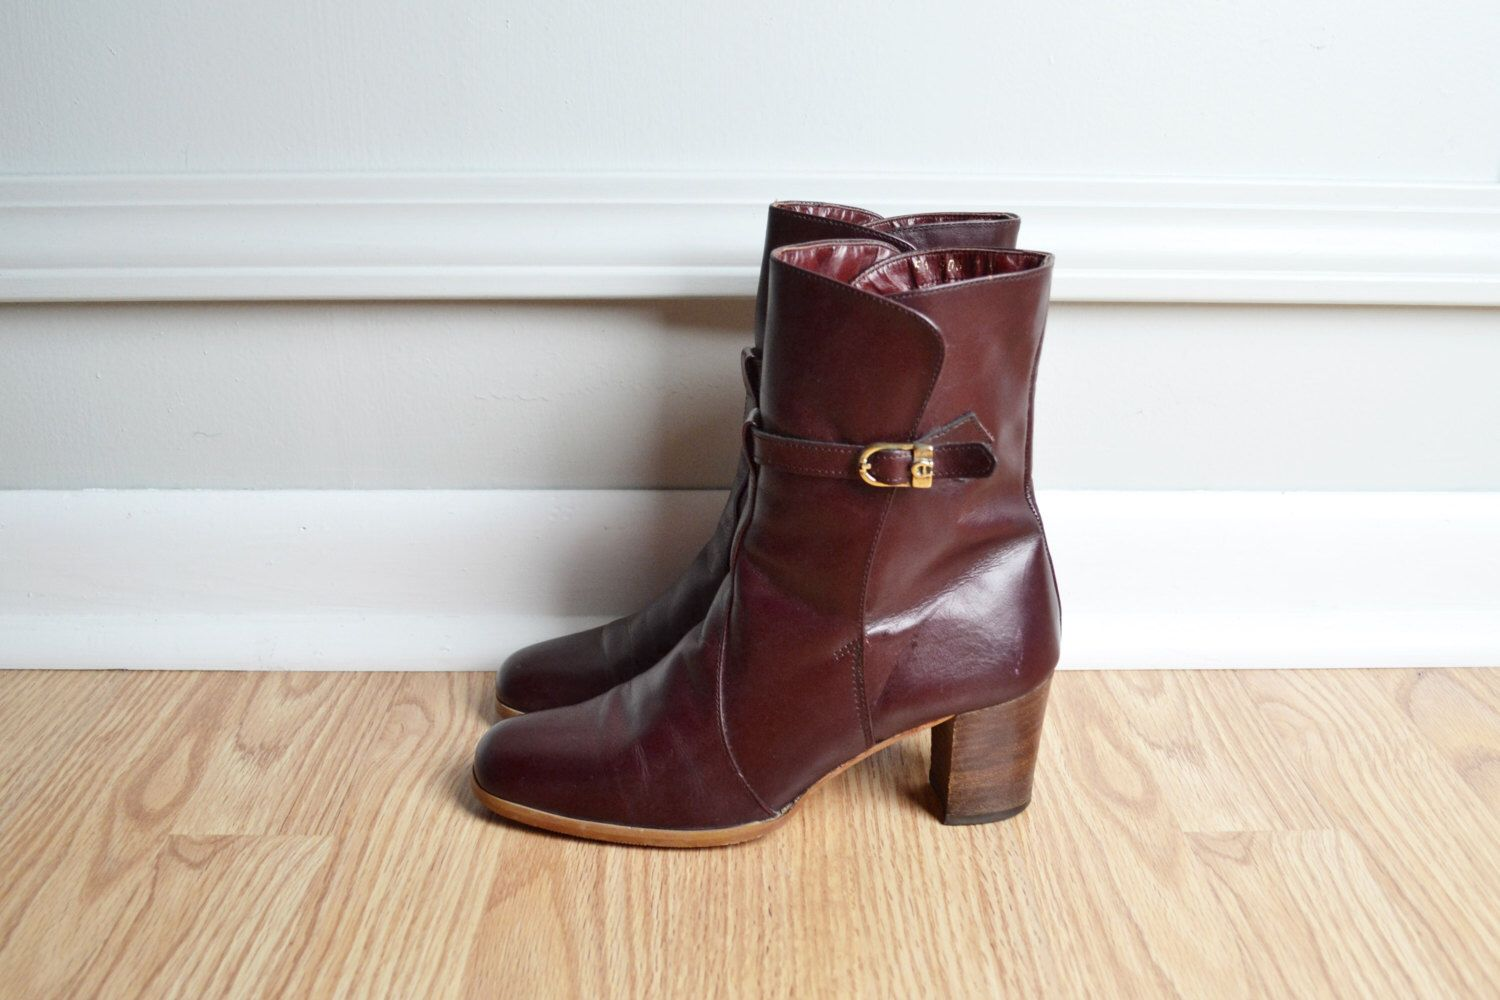 2e66b511f Shoes Ankle Boots / Heeled / Oxblood Maroon Leather / Etienne Aigner / Chic  / 70s